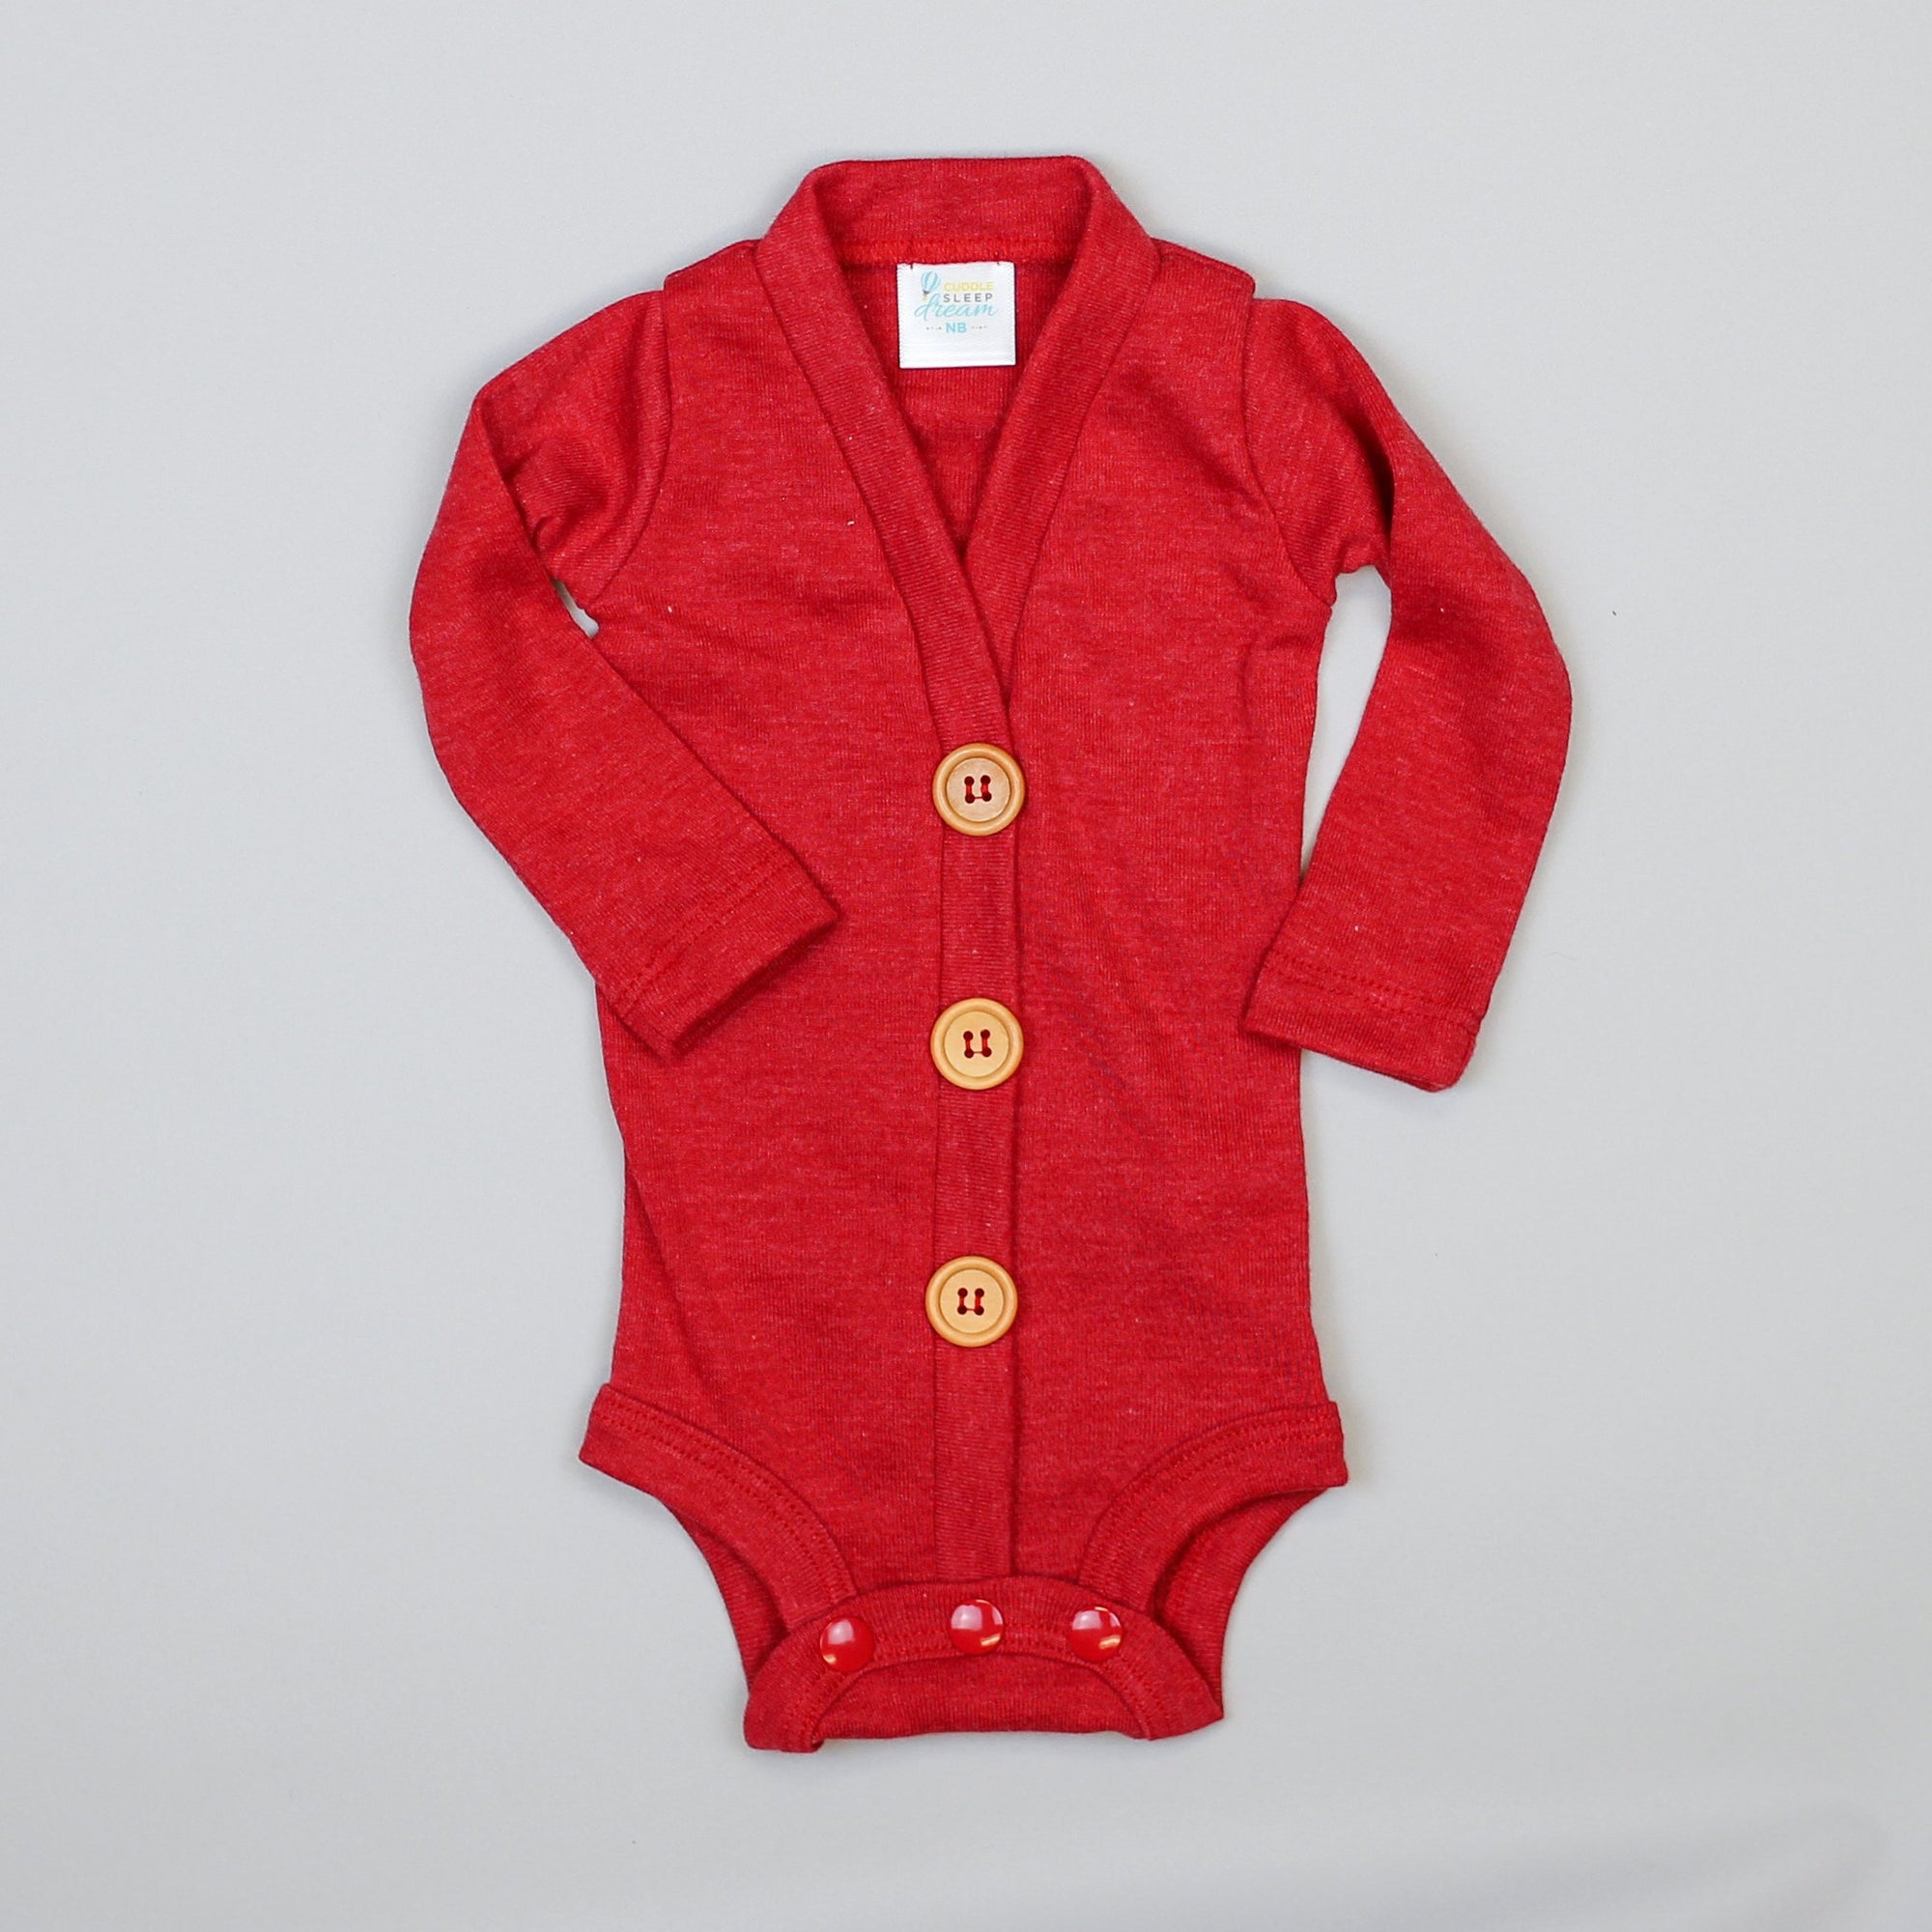 Cuddle Sleep Dream Cardigan Heathered Red Cardisuit (Nov 2019)